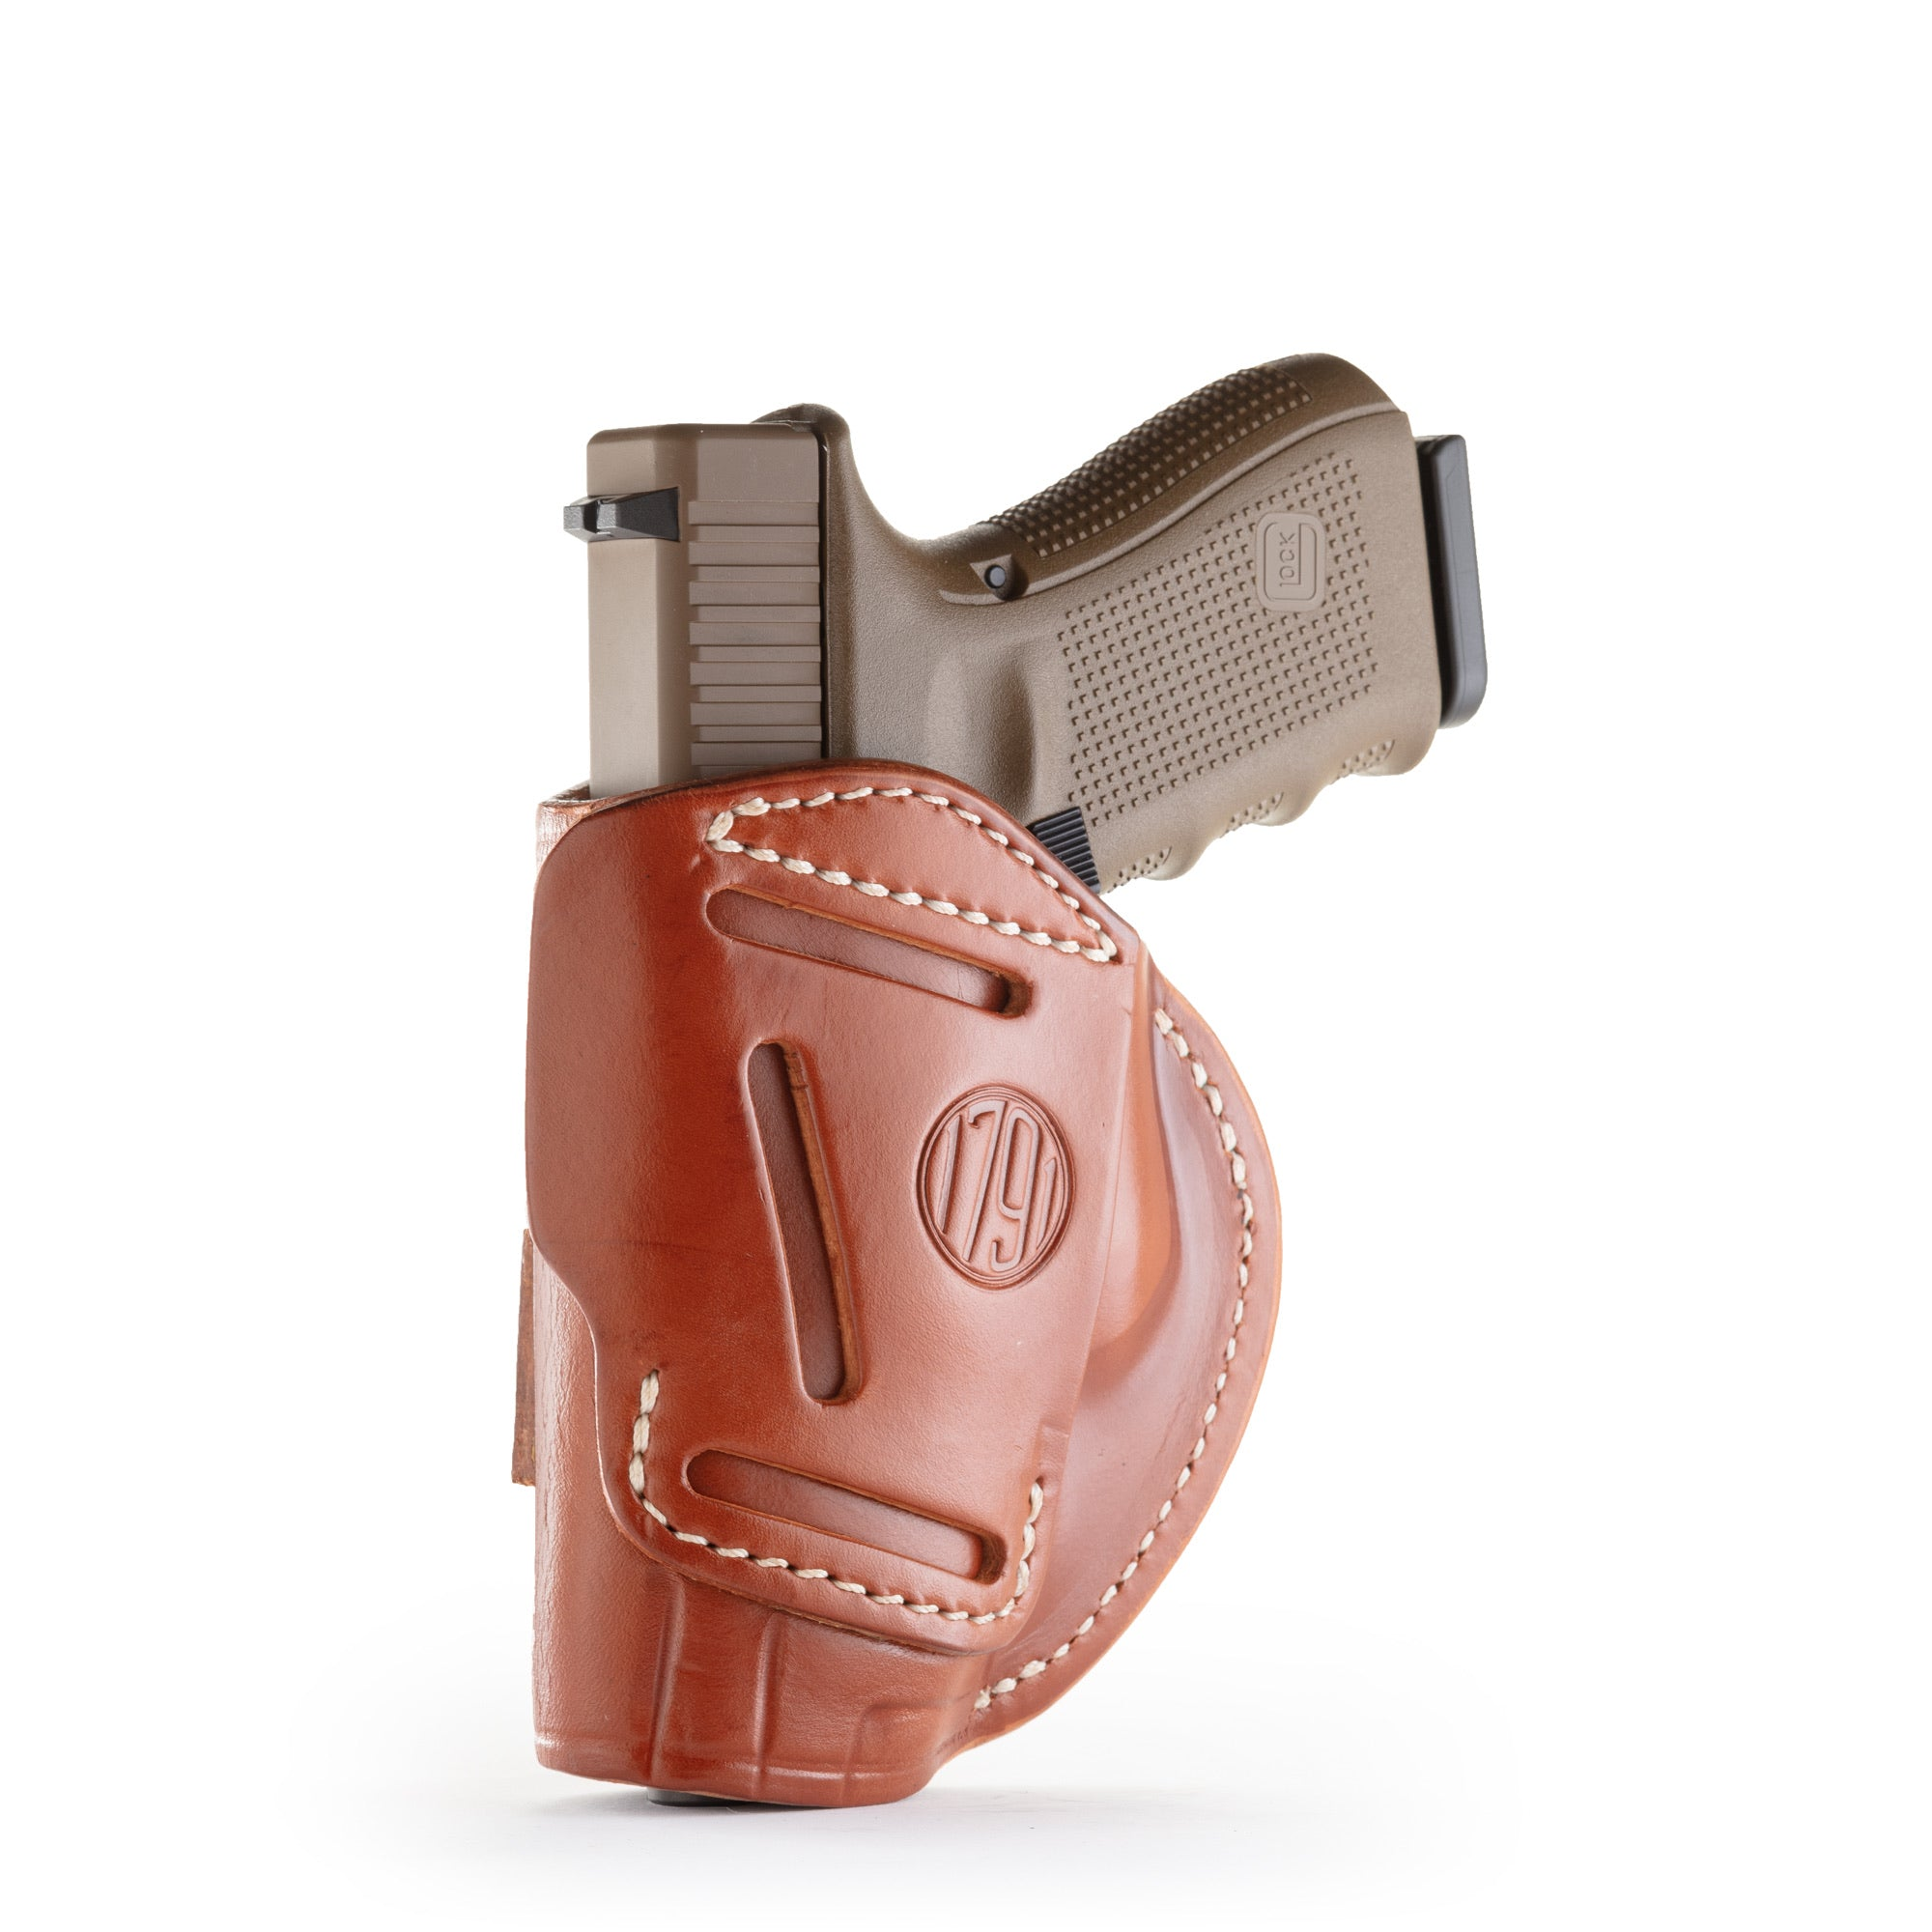 1791 Gunleather Four Way Multi-Fit IWB & OWB Holster